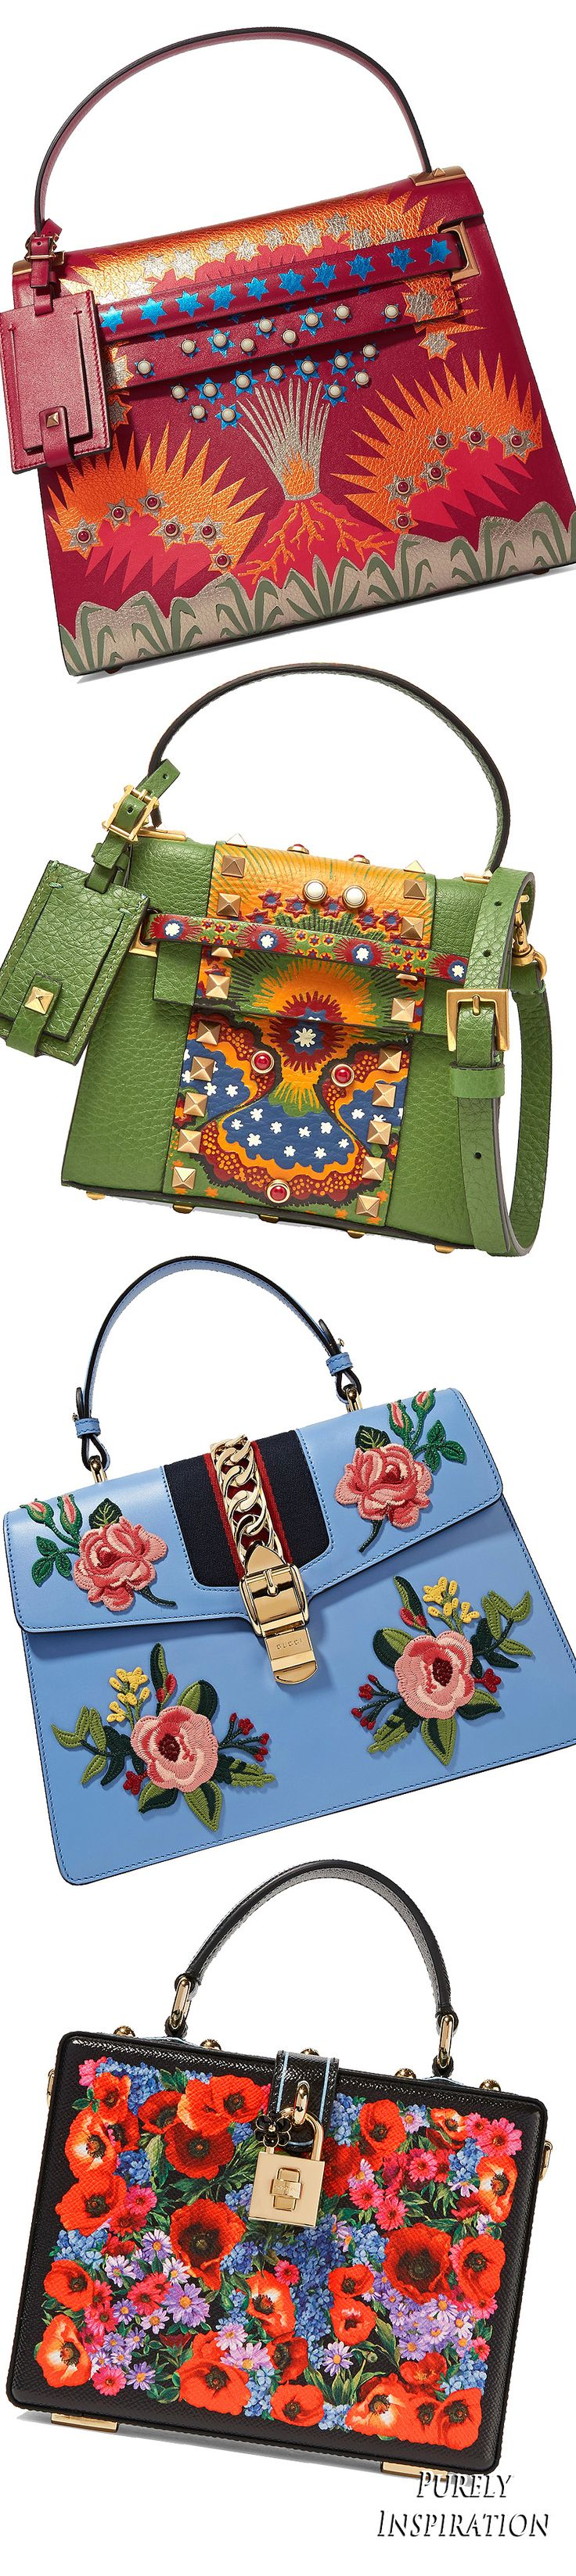 Multi-colored Net-a-Porter top handle bags (from the top Valentino, Valentino, Gucci, Dolce & Gabbana) Women's handbags | Purely Inspiration